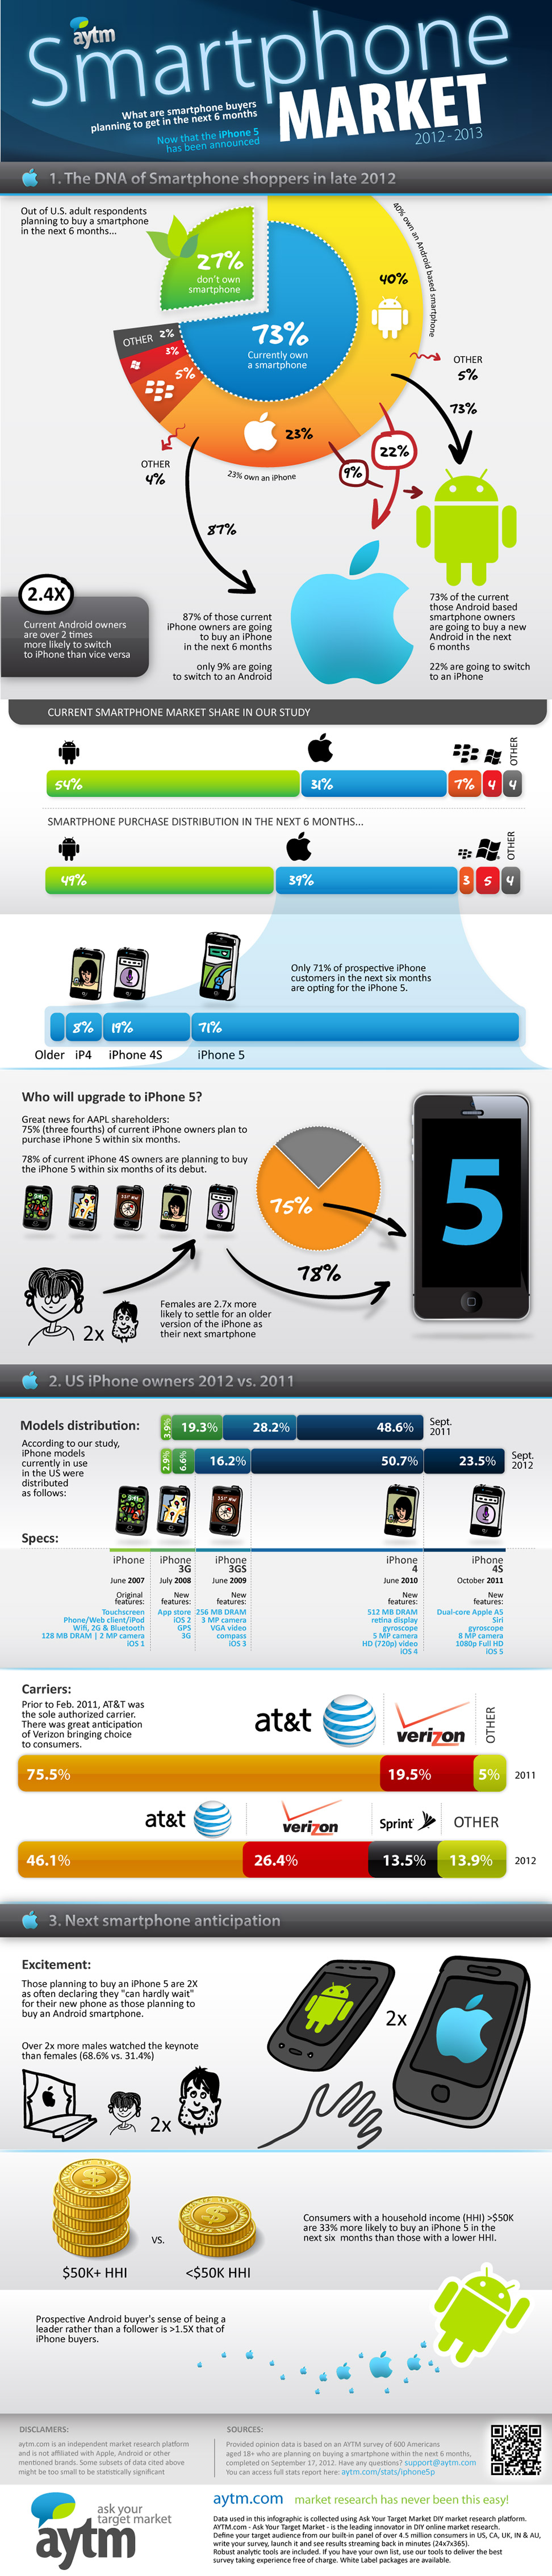 How iPhone 5 Has Affected the Smartphone Market